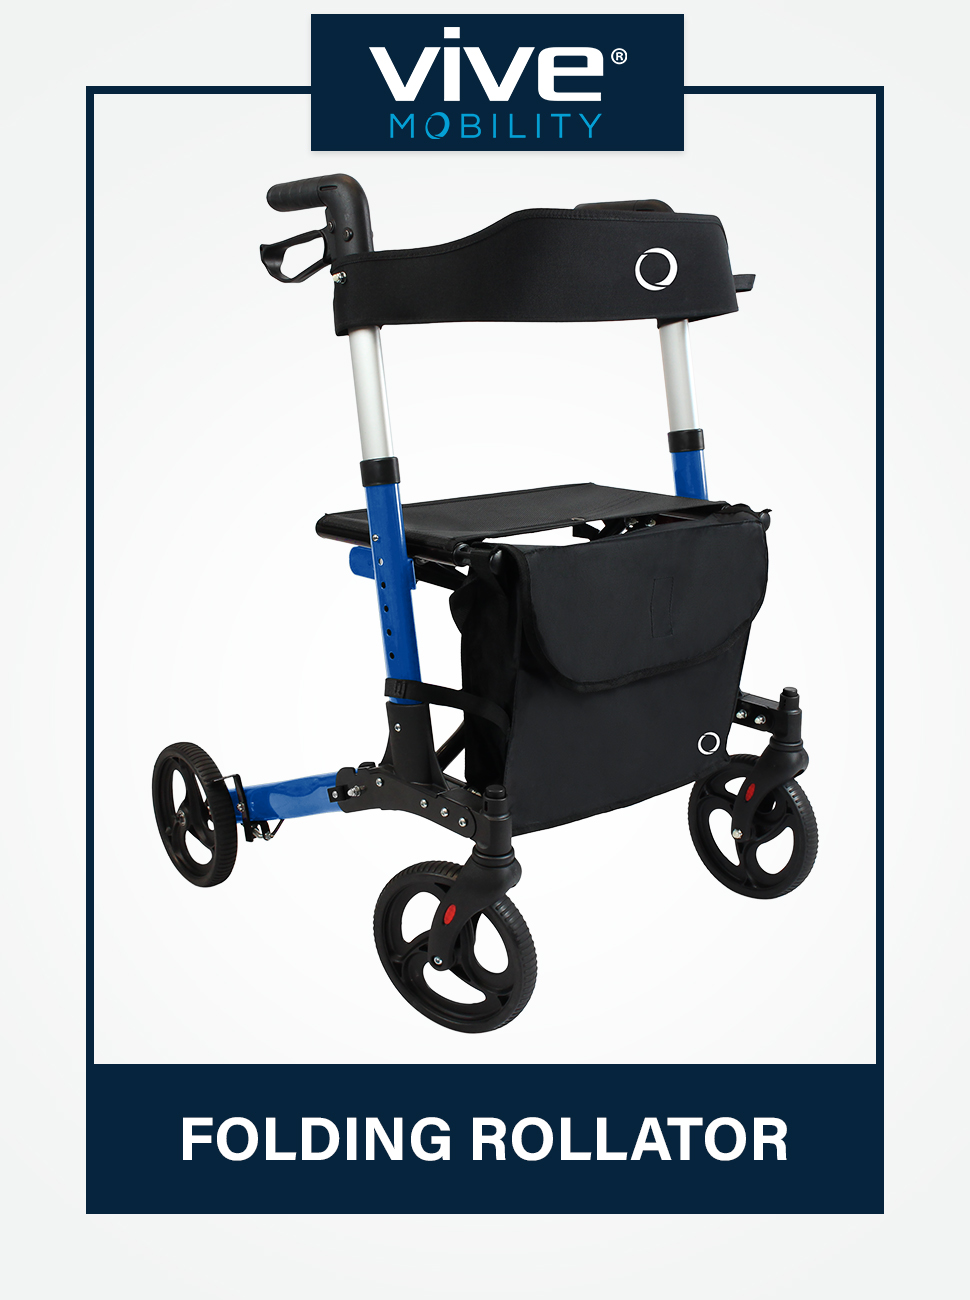 Vive Mobility Folding Rollator Walker 4 Wheel Medical Rolling Walker with Seat & Bag - Mobility Aid